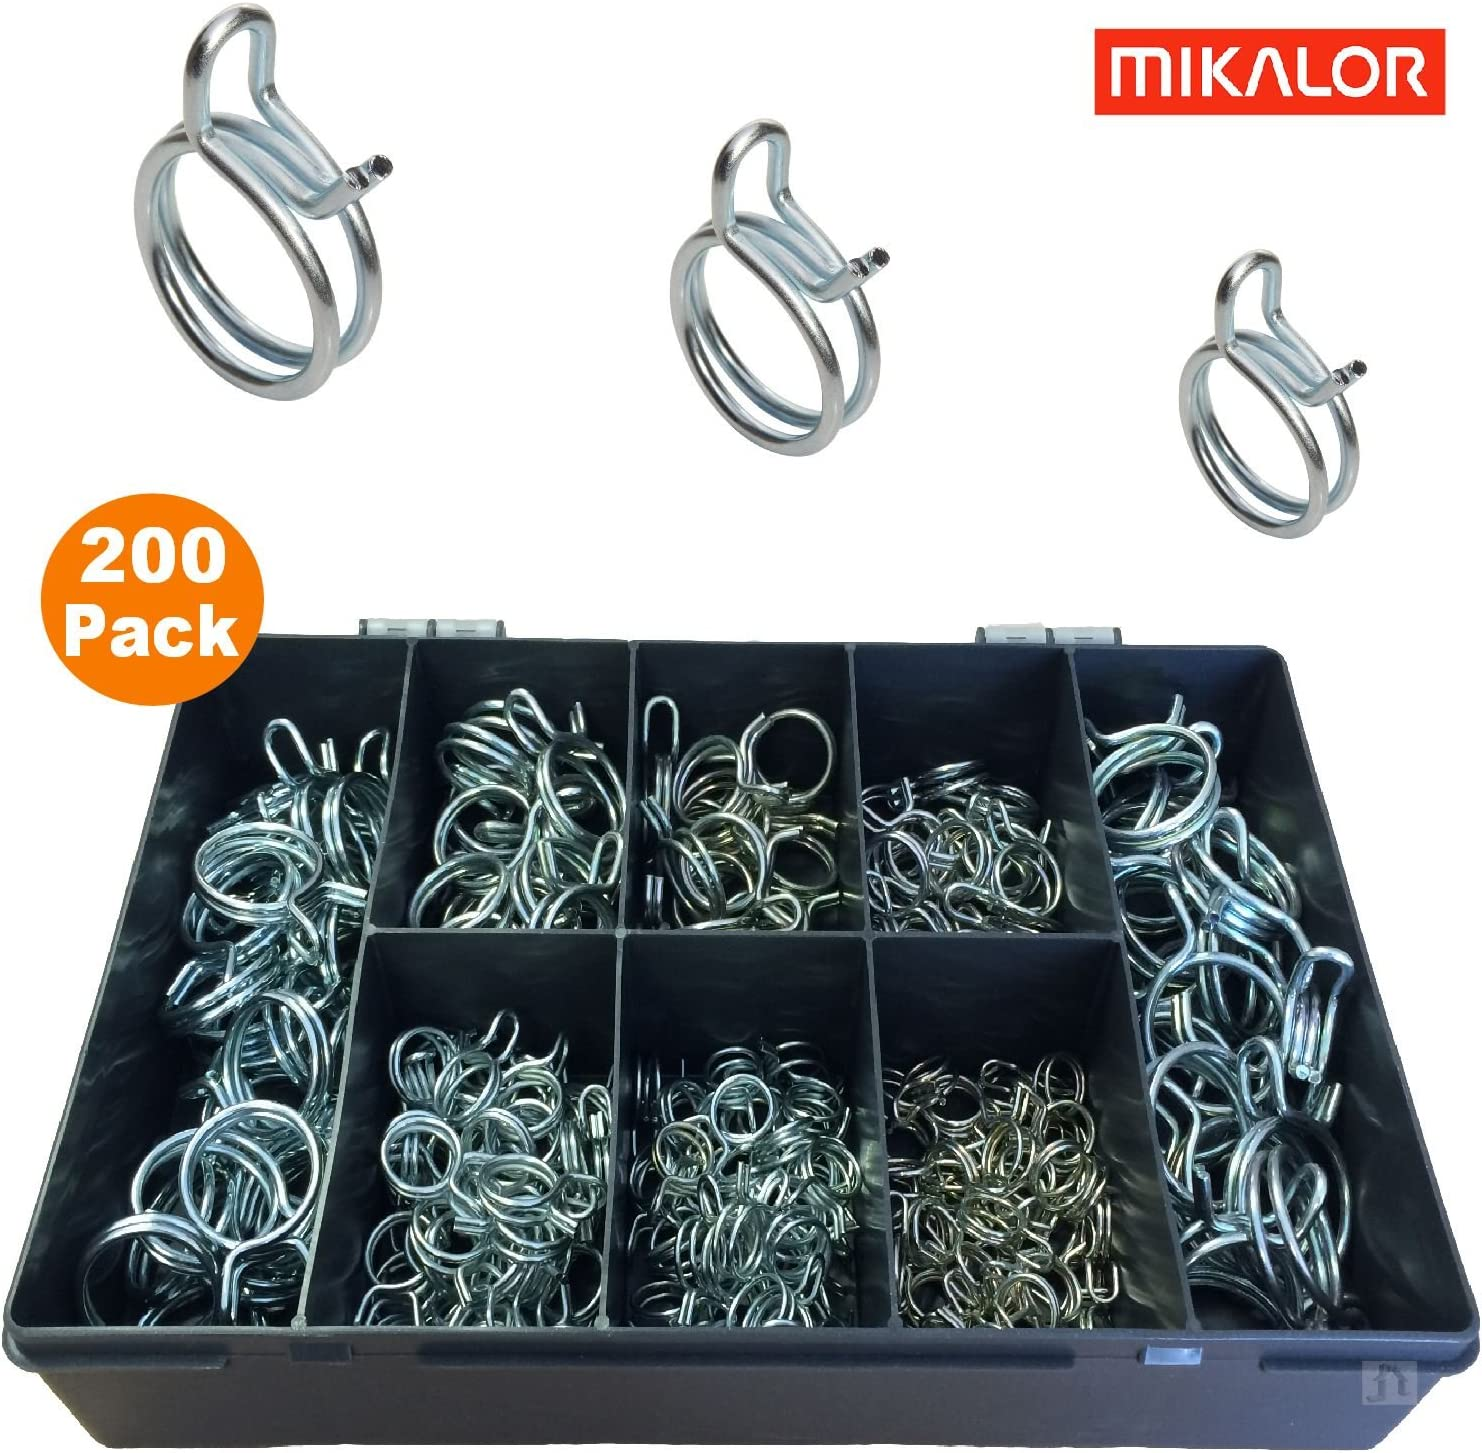 Smarthome Cheap mail order specialty store 200 x Assorted Mikalor Wire Double Coolan Spring Selling and selling Clips